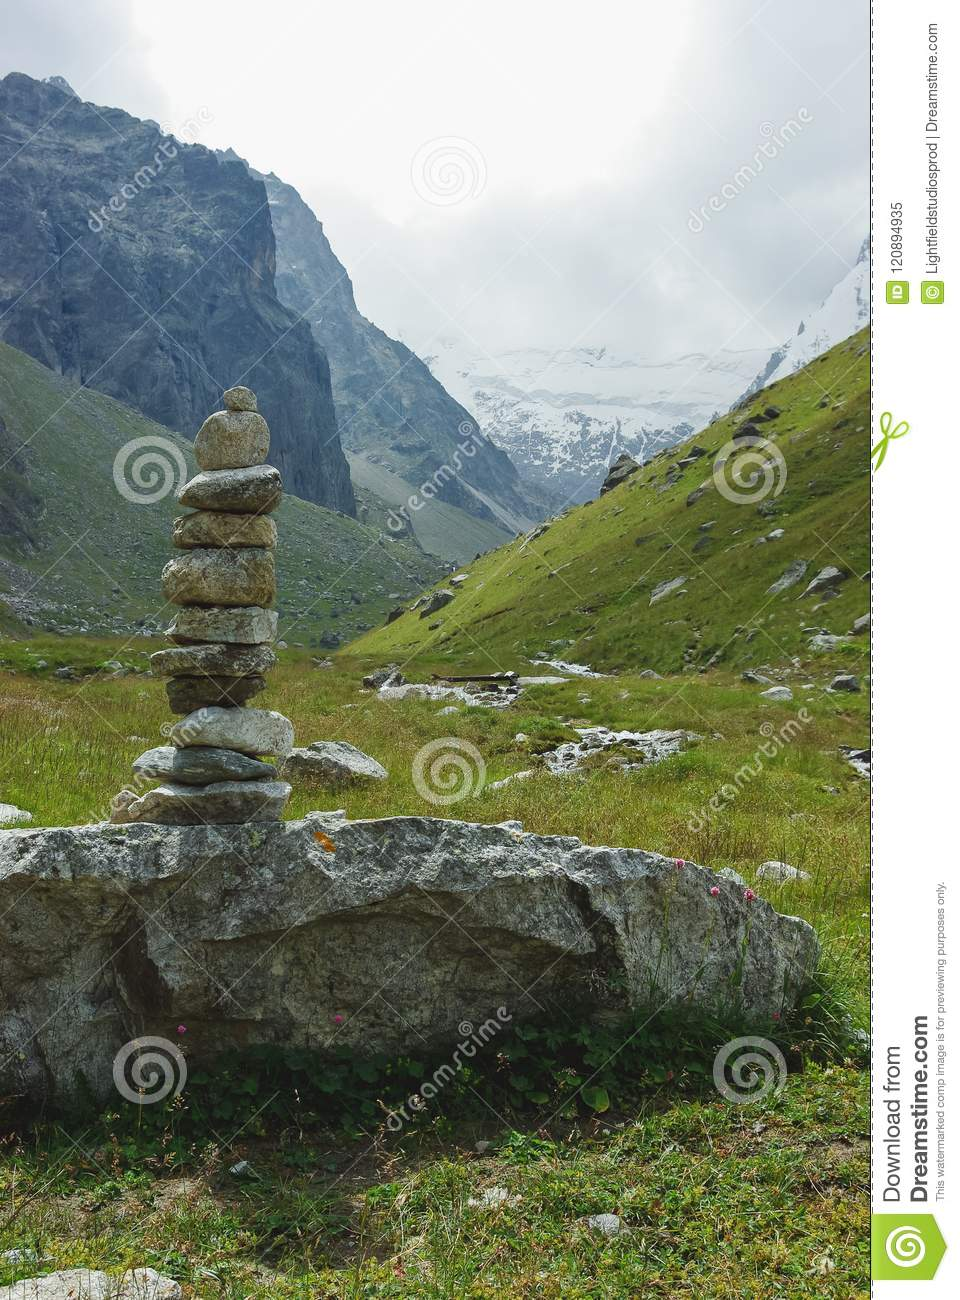 stones architecture in mountains Russian Federation, Caucasus,